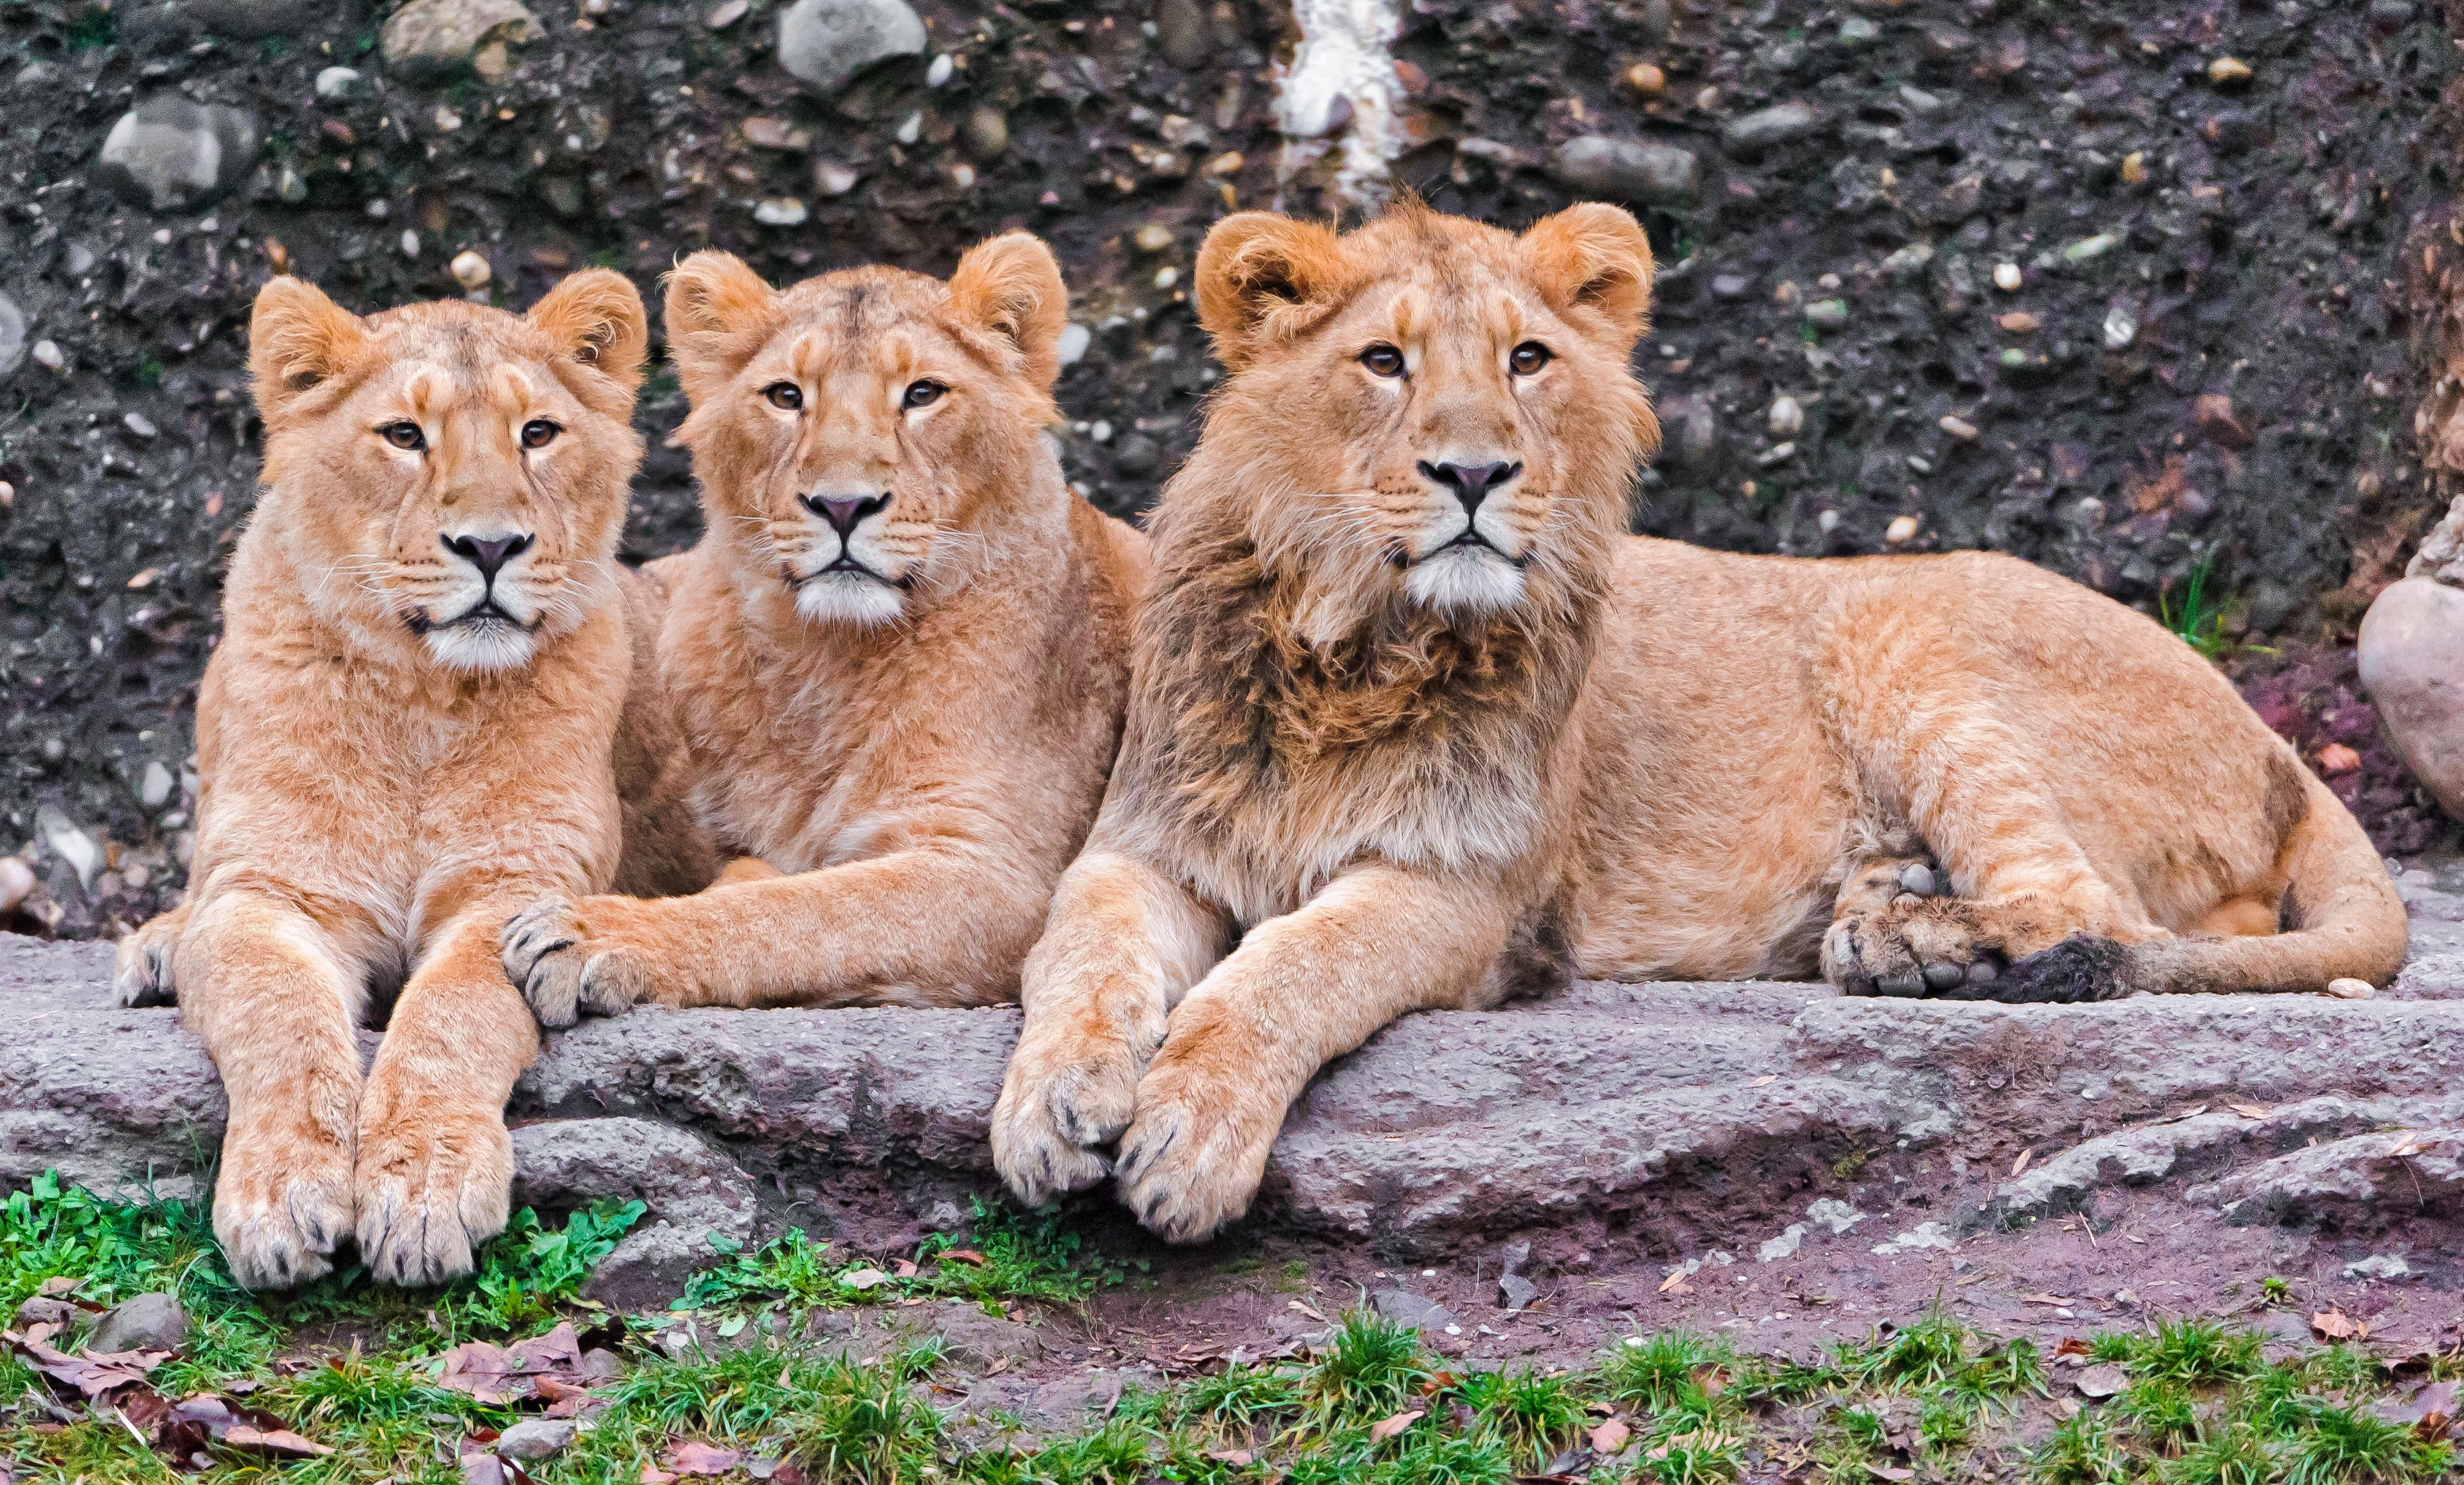 122027 download wallpaper Animals, Three, Sit, Predators, Lions screensavers and pictures for free